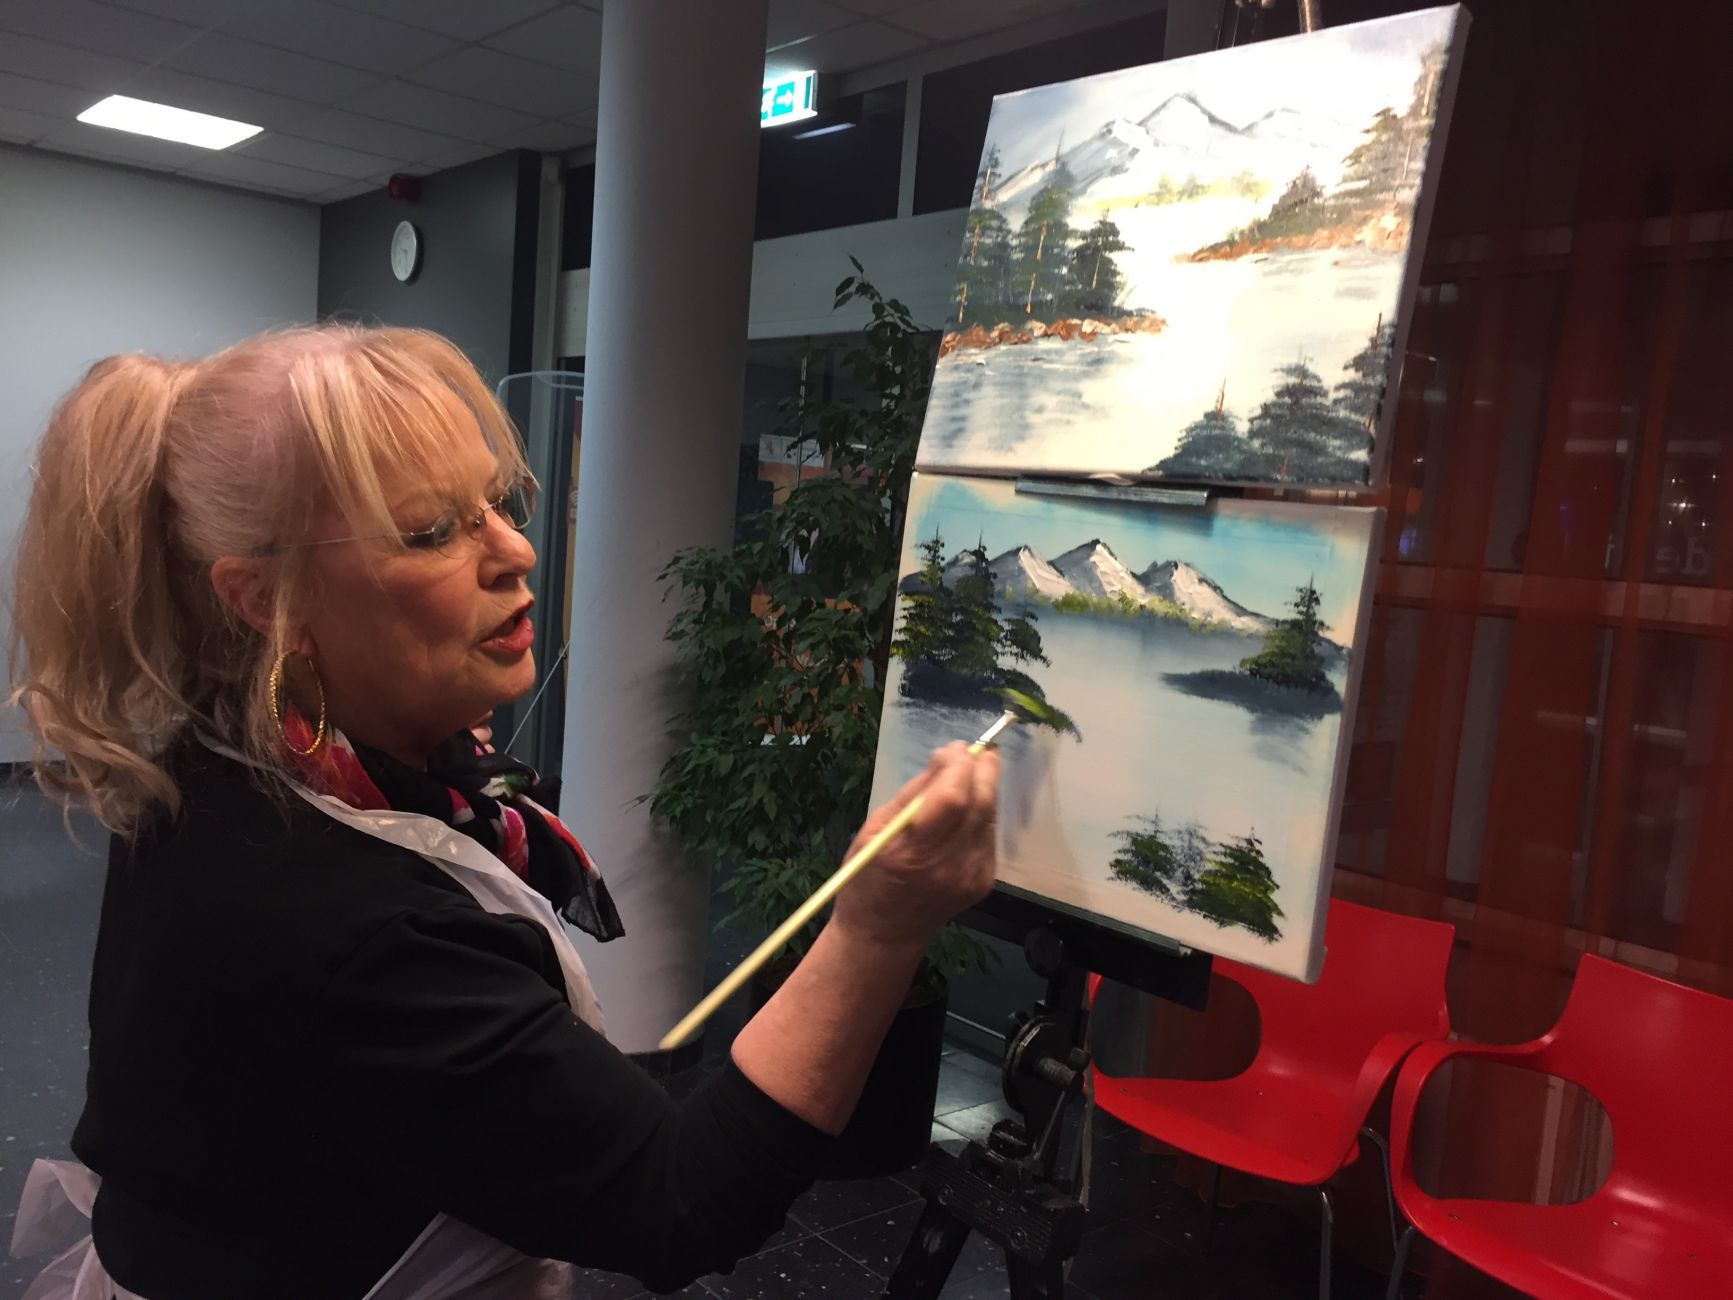 De Bob Ross-methode: schilderworkshop door Nelie Meininger